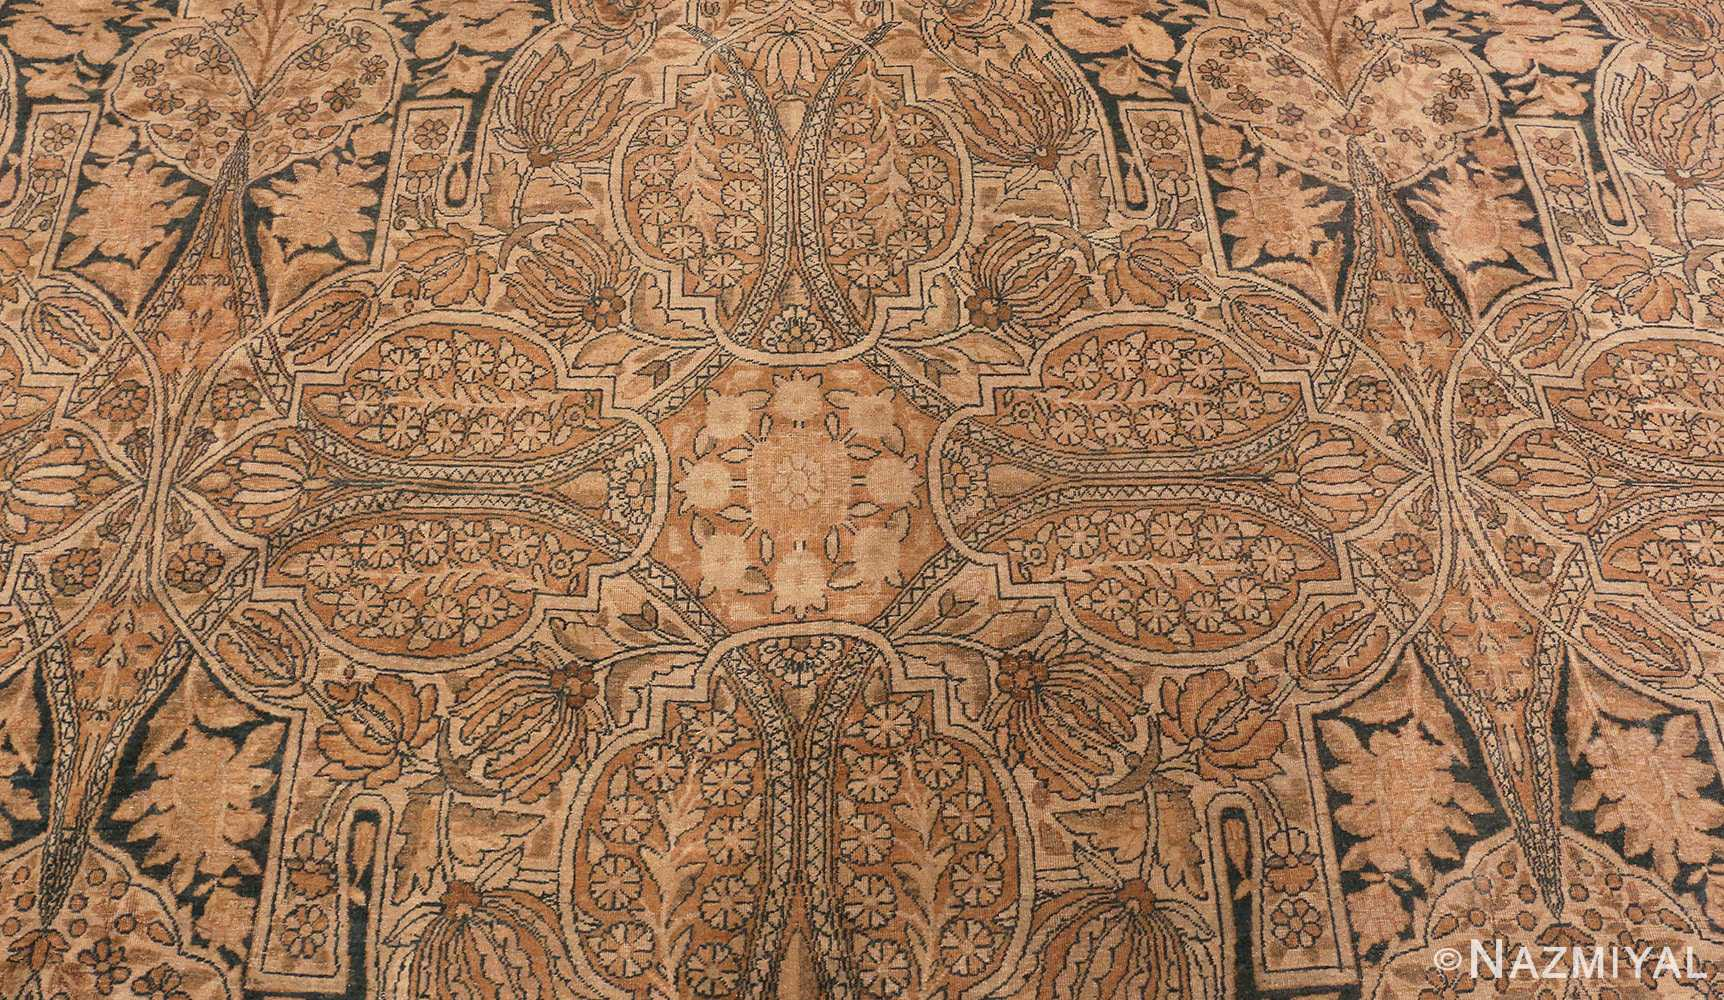 Picture of The Center Of Antique Persian Kerman Rug #42703 from Nazmiyal Antique Rugs In NYC